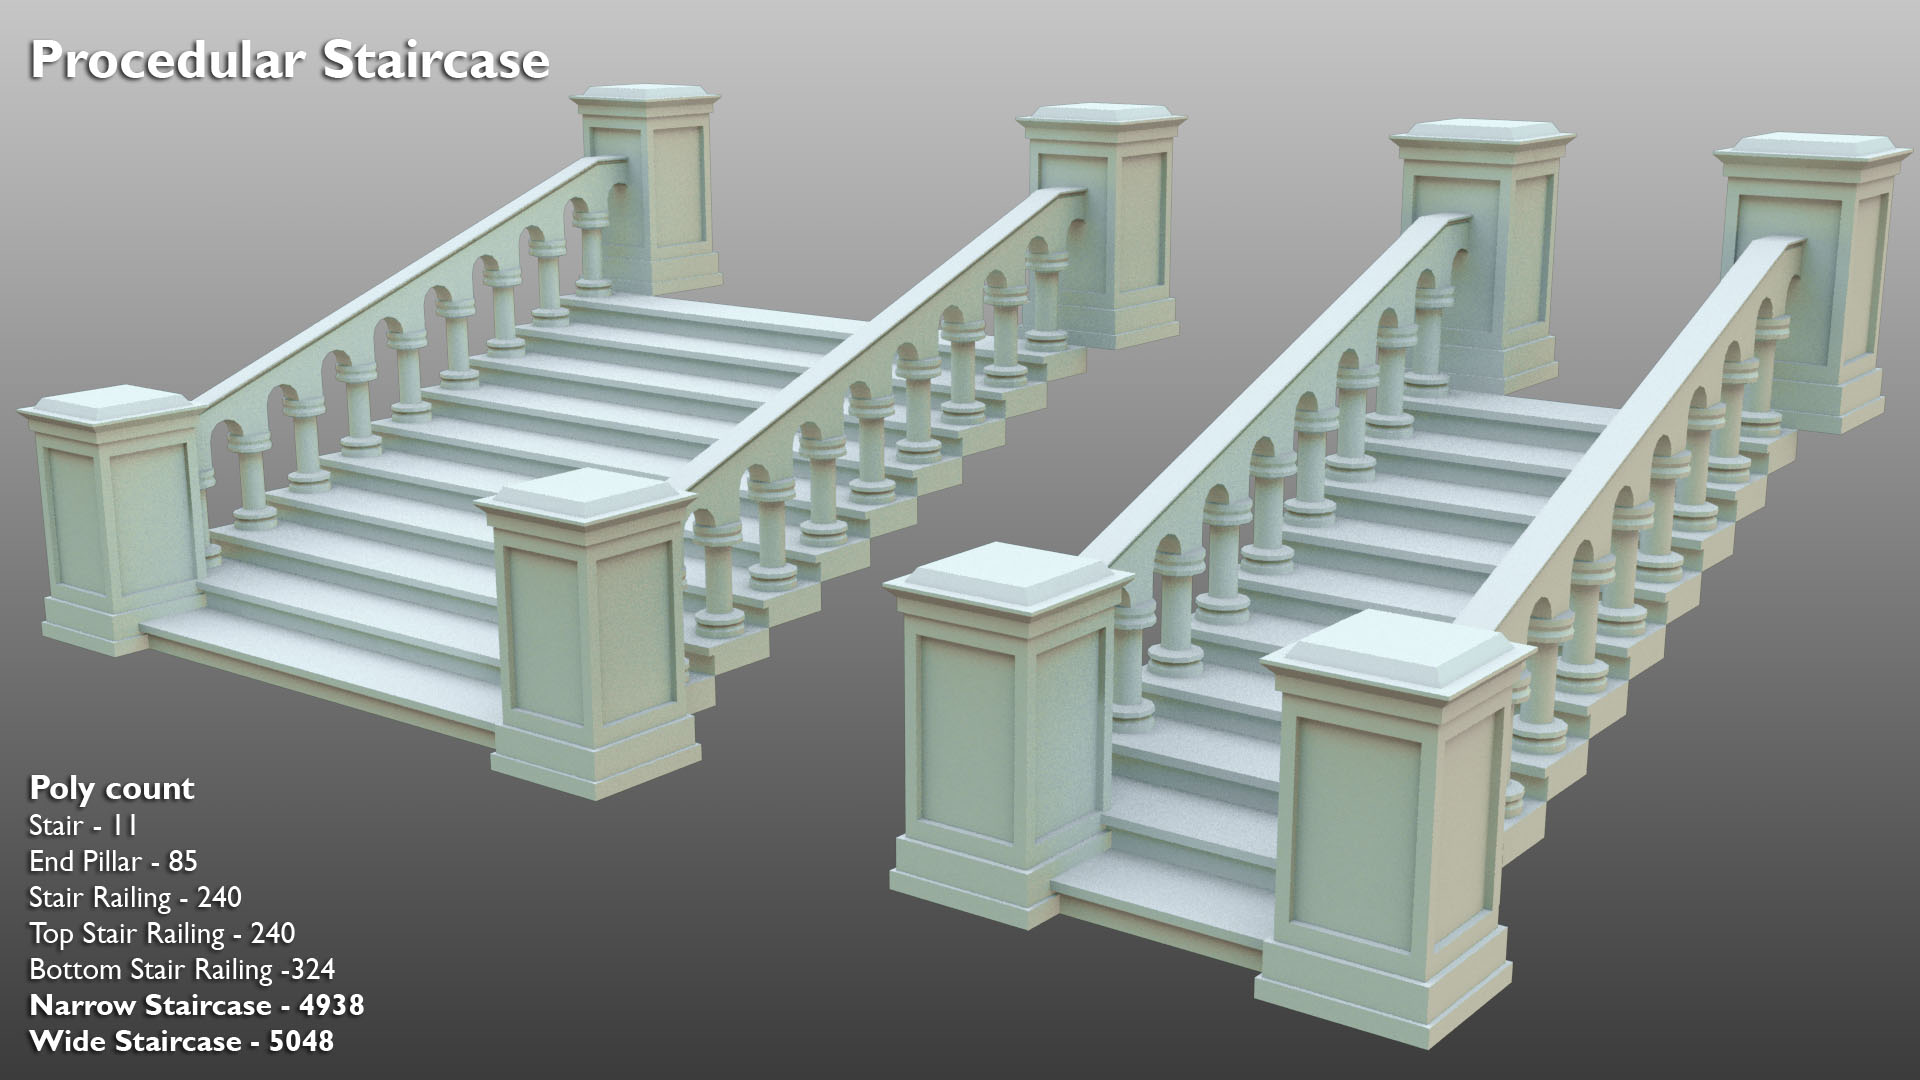 Procedural Staircase - 3D preview by 3DPad